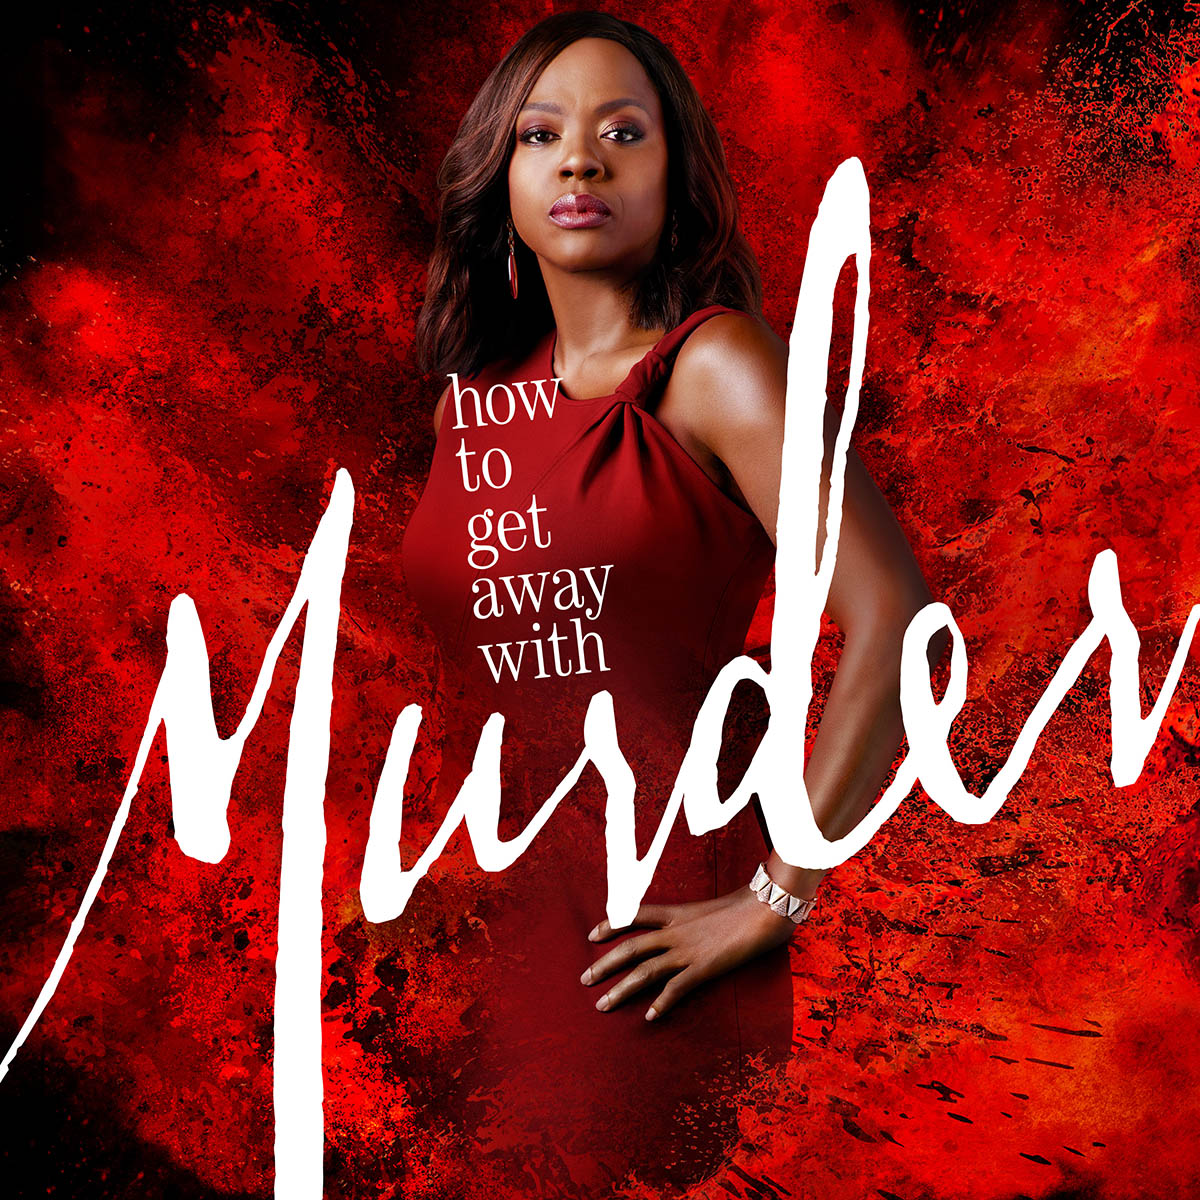 How to Get Away With Murder ABC Promos - Television Promos - photo#17